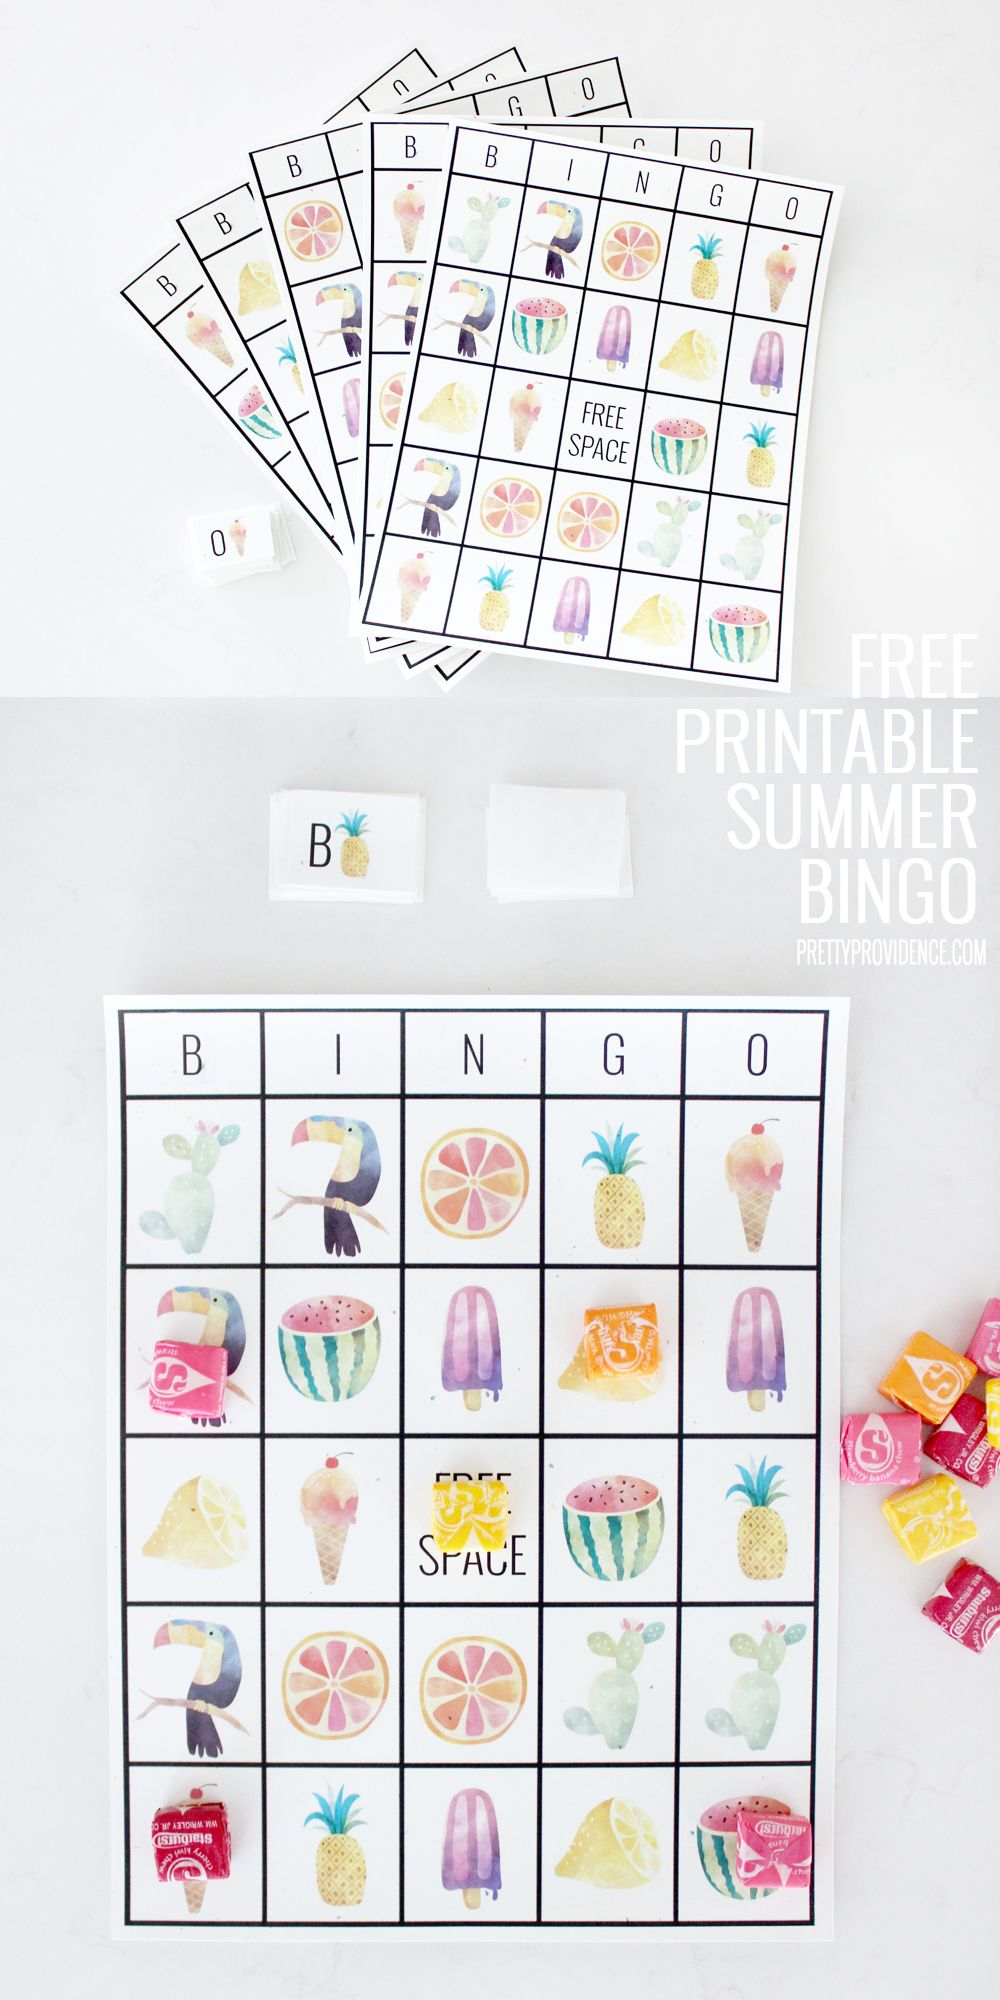 Free Printable Adorable Summer Bingo Cards With Images Summer